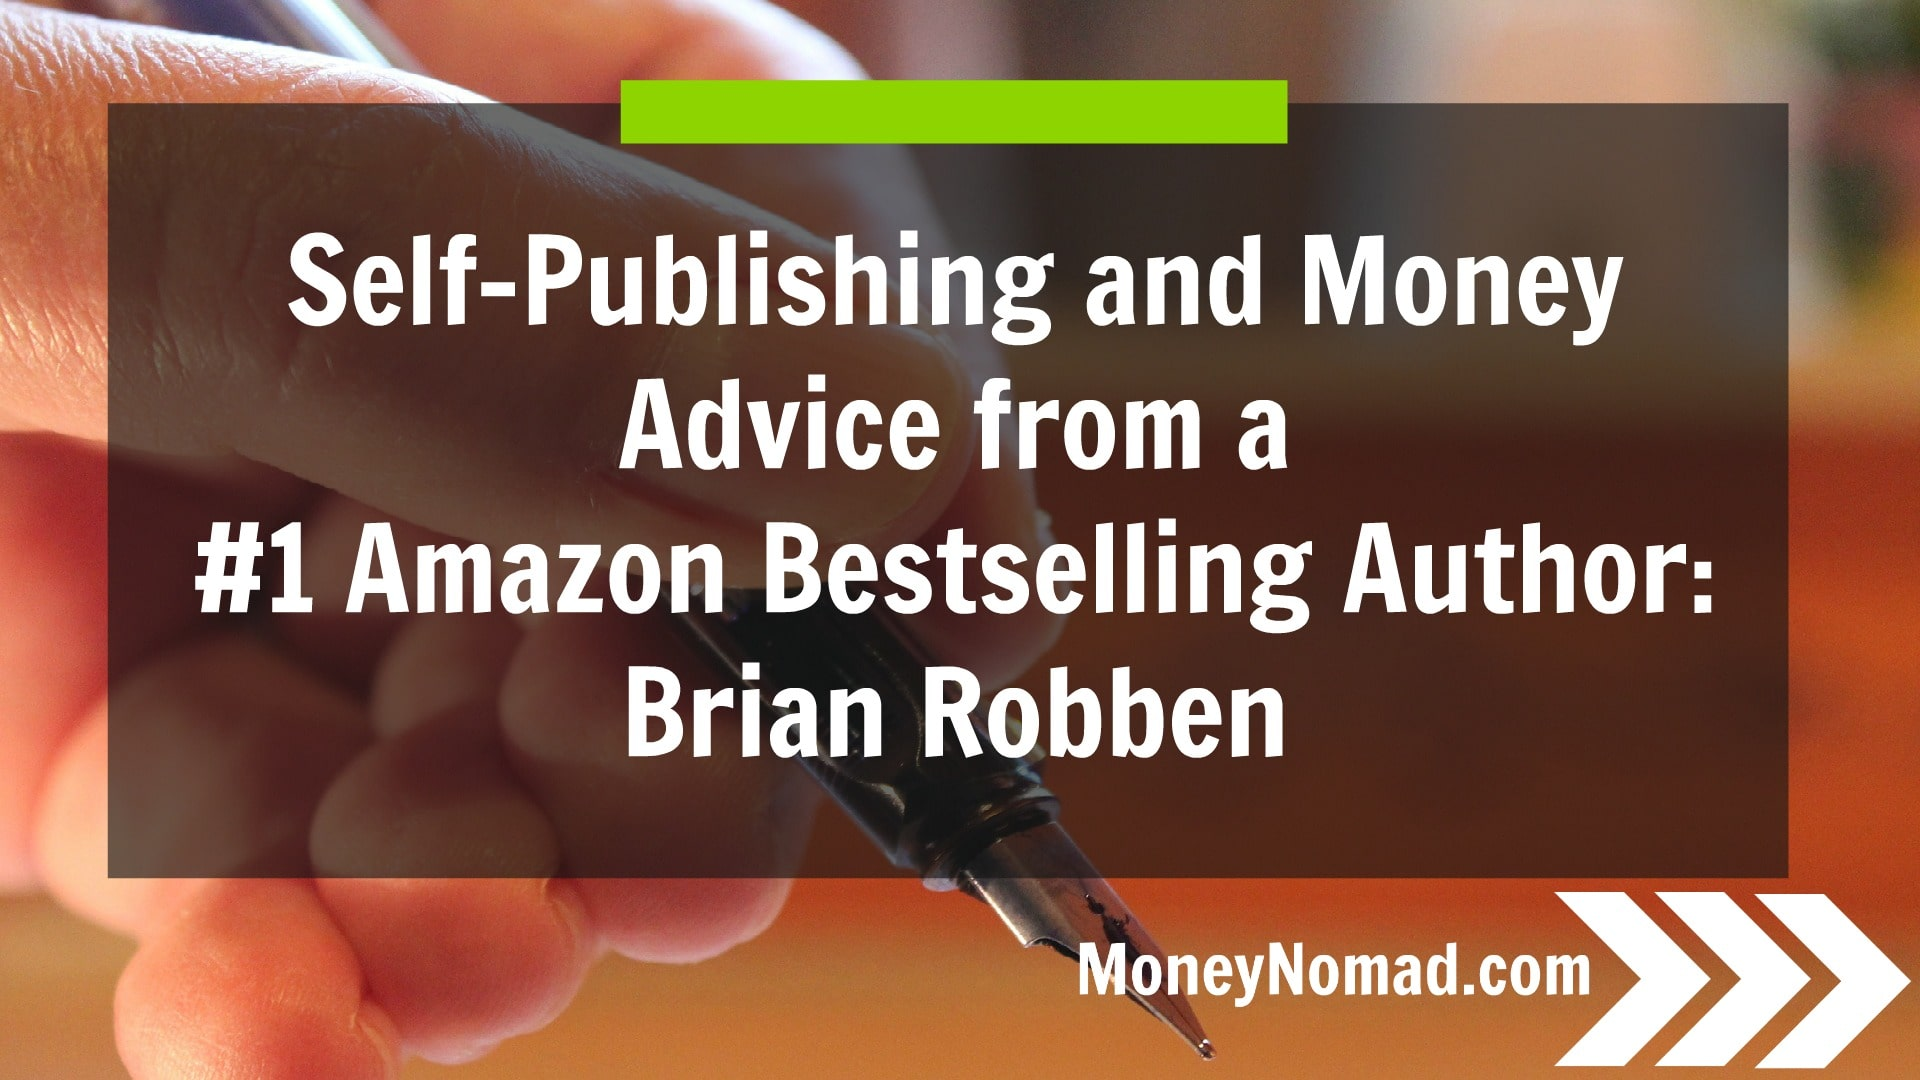 Self-Publishing and Money Advice from a #1 Amazon Bestselling Author Brian Robben